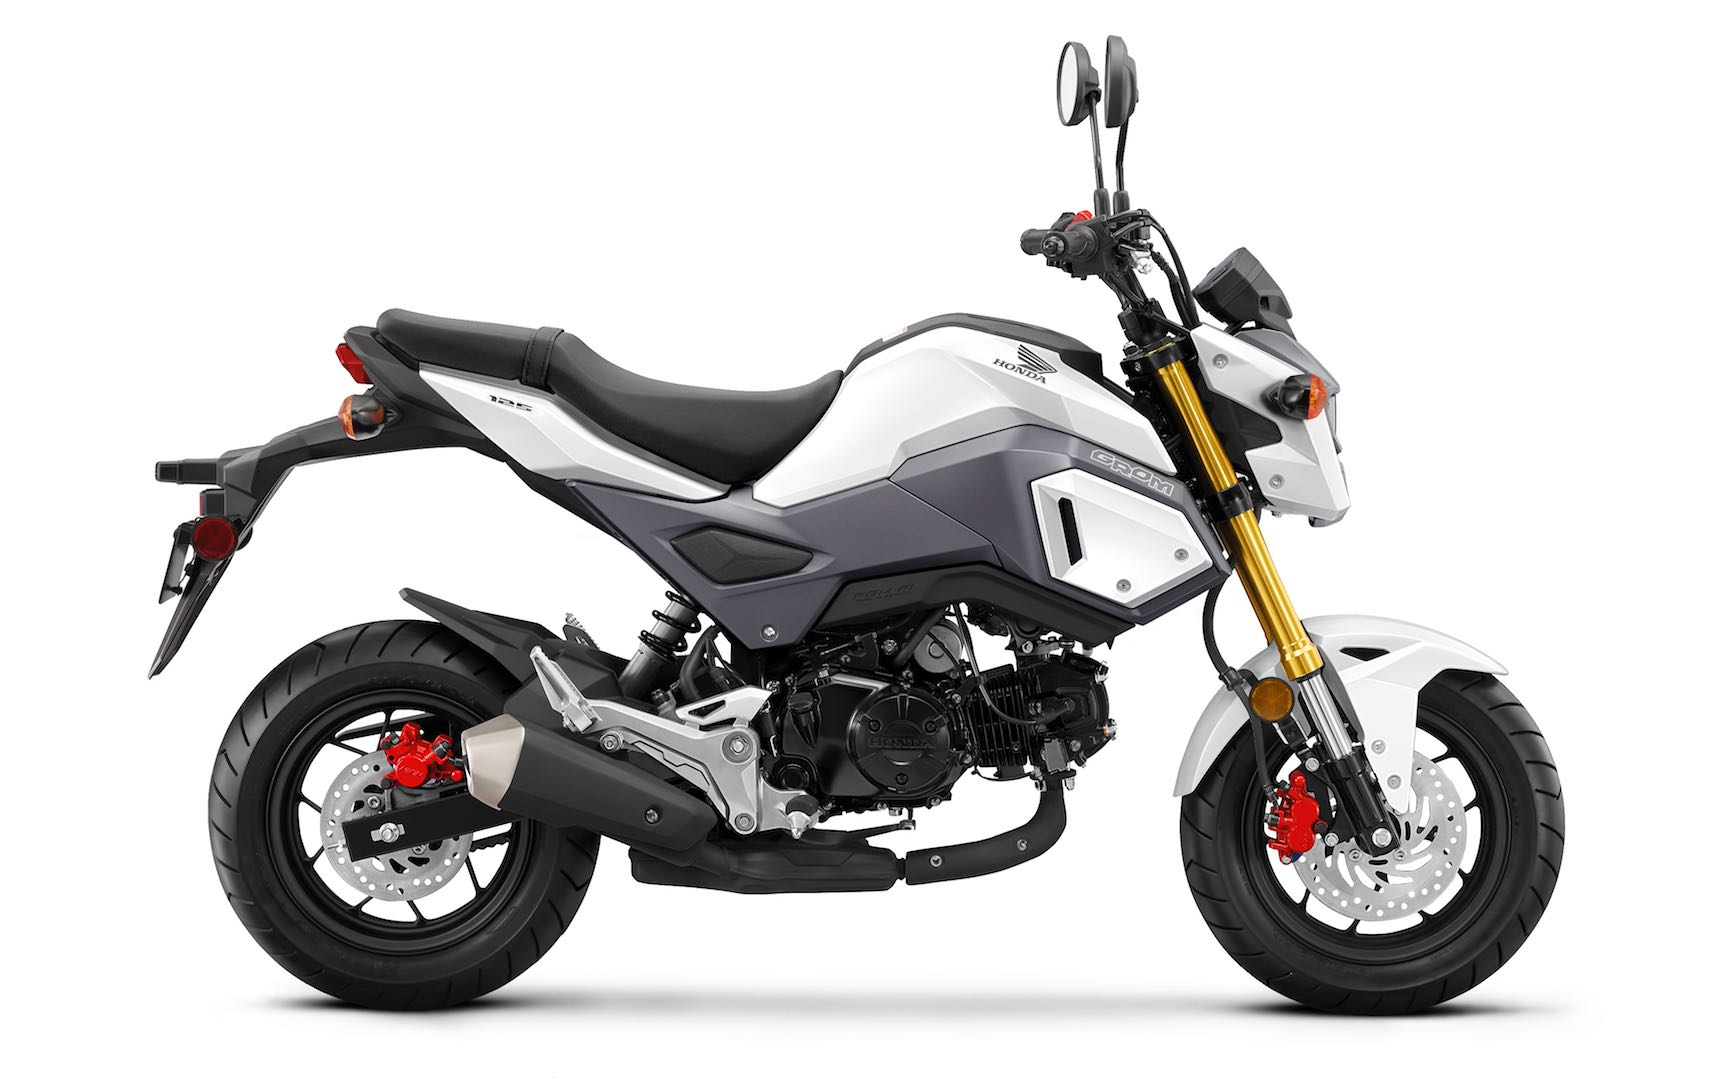 2018 Honda Grom Buyer's Guide